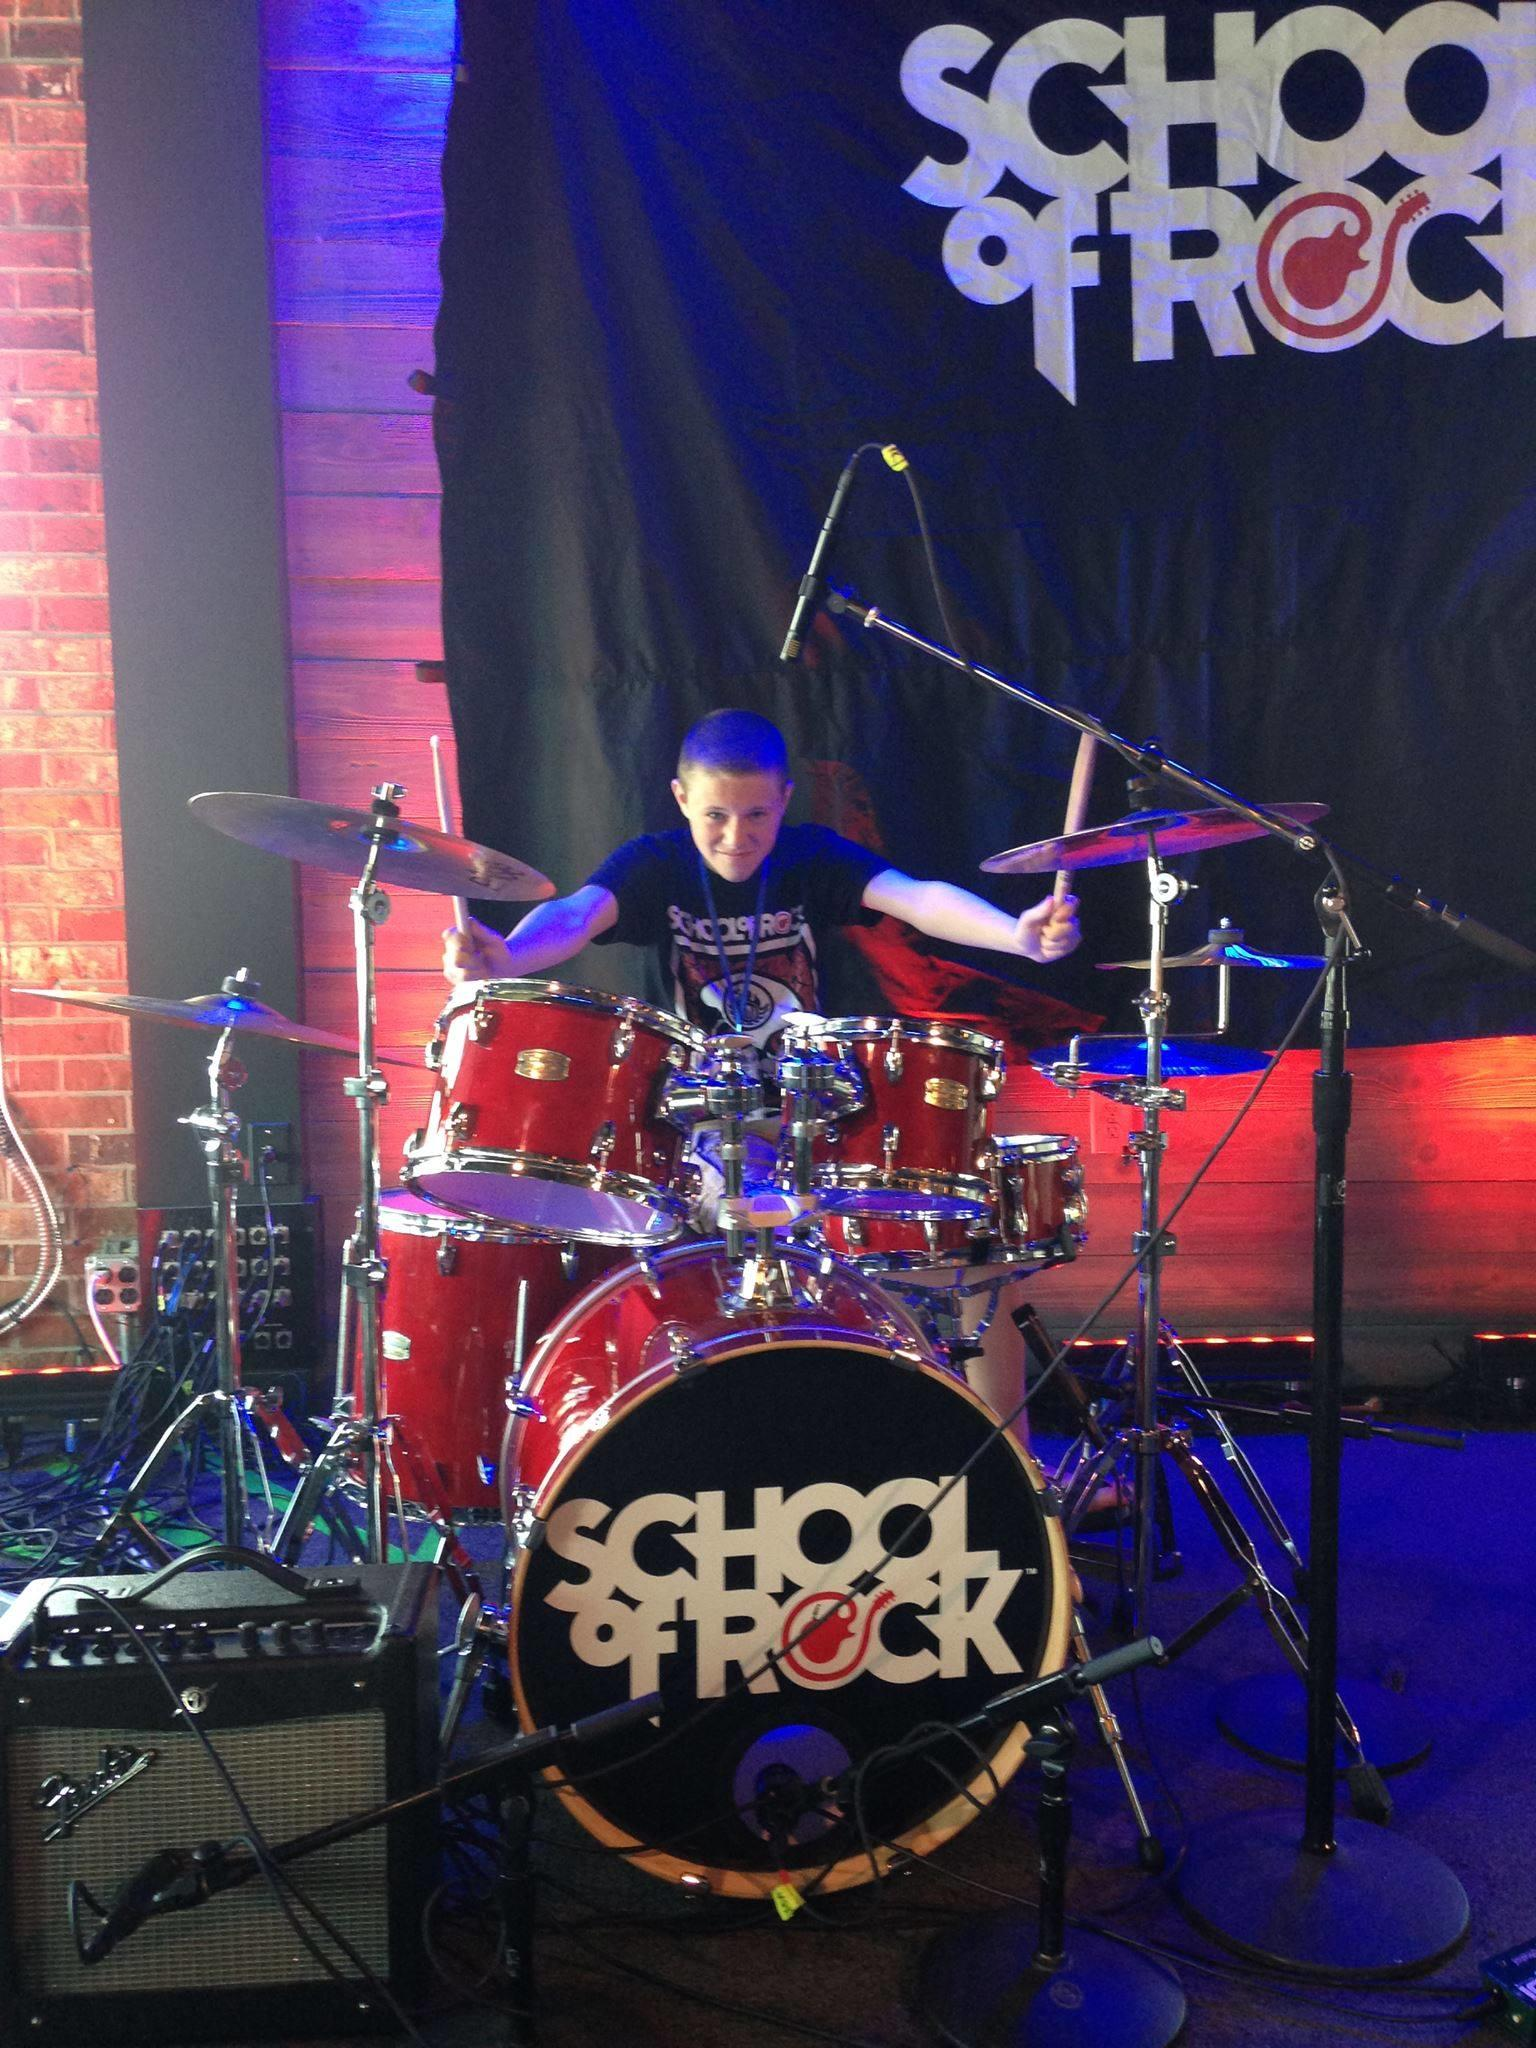 School of Rock Knoxville image 1